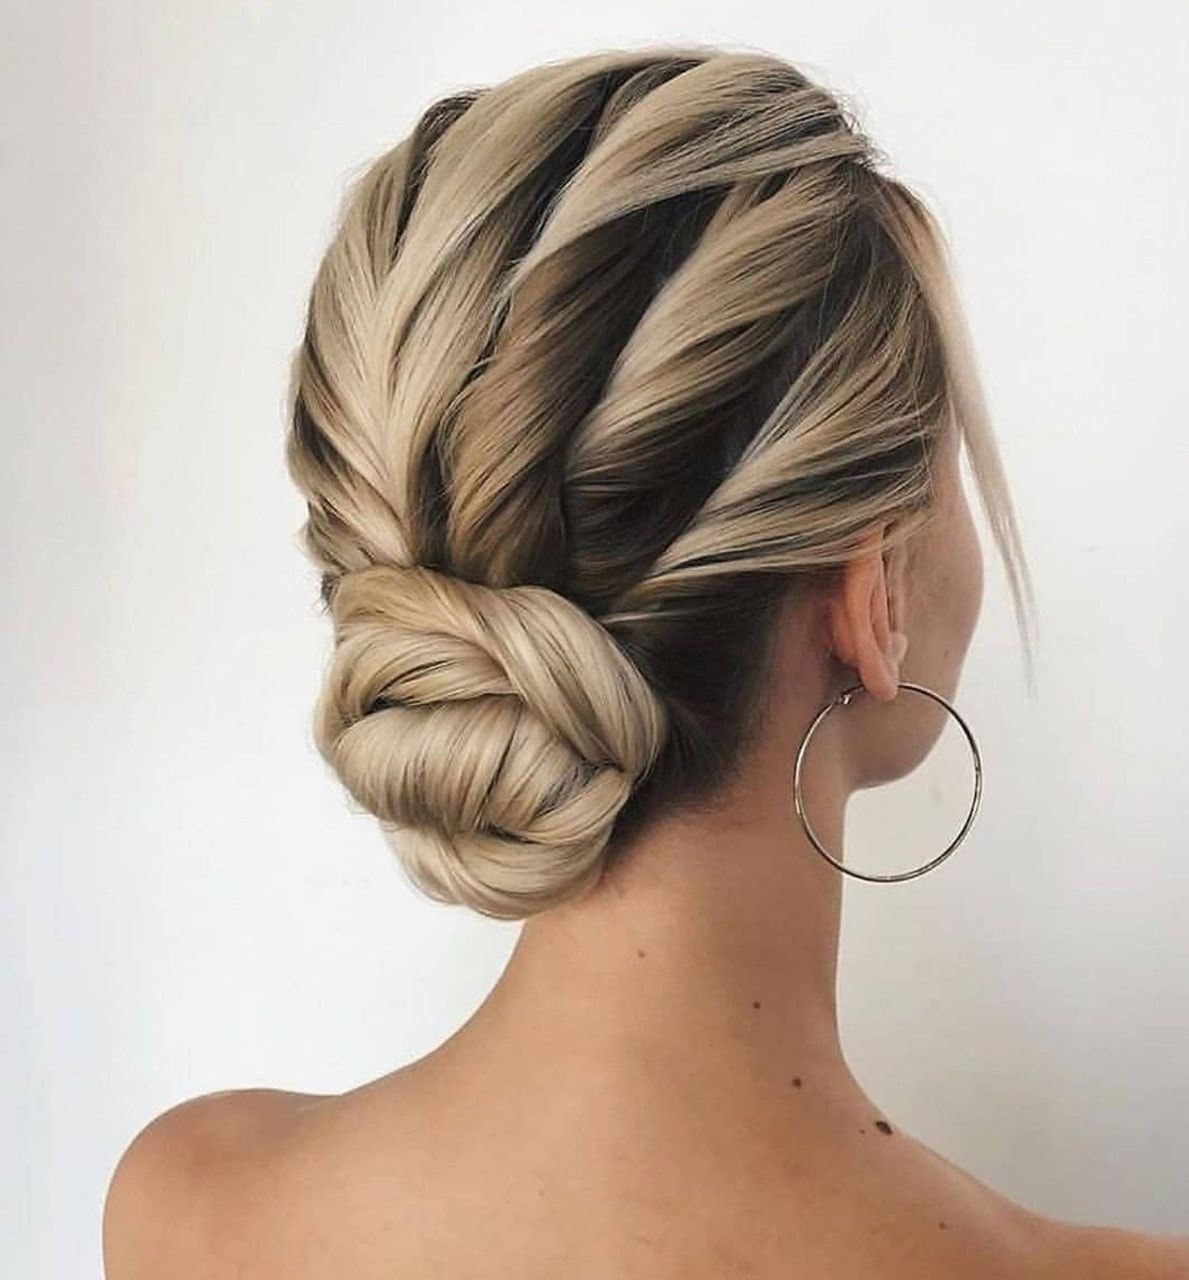 Elegant Wedding Hairstyle Idea: Image Uploaded By 𝒫𝒶𝓊𝓁𝒾𝓃𝒶. Find Images And Videos About